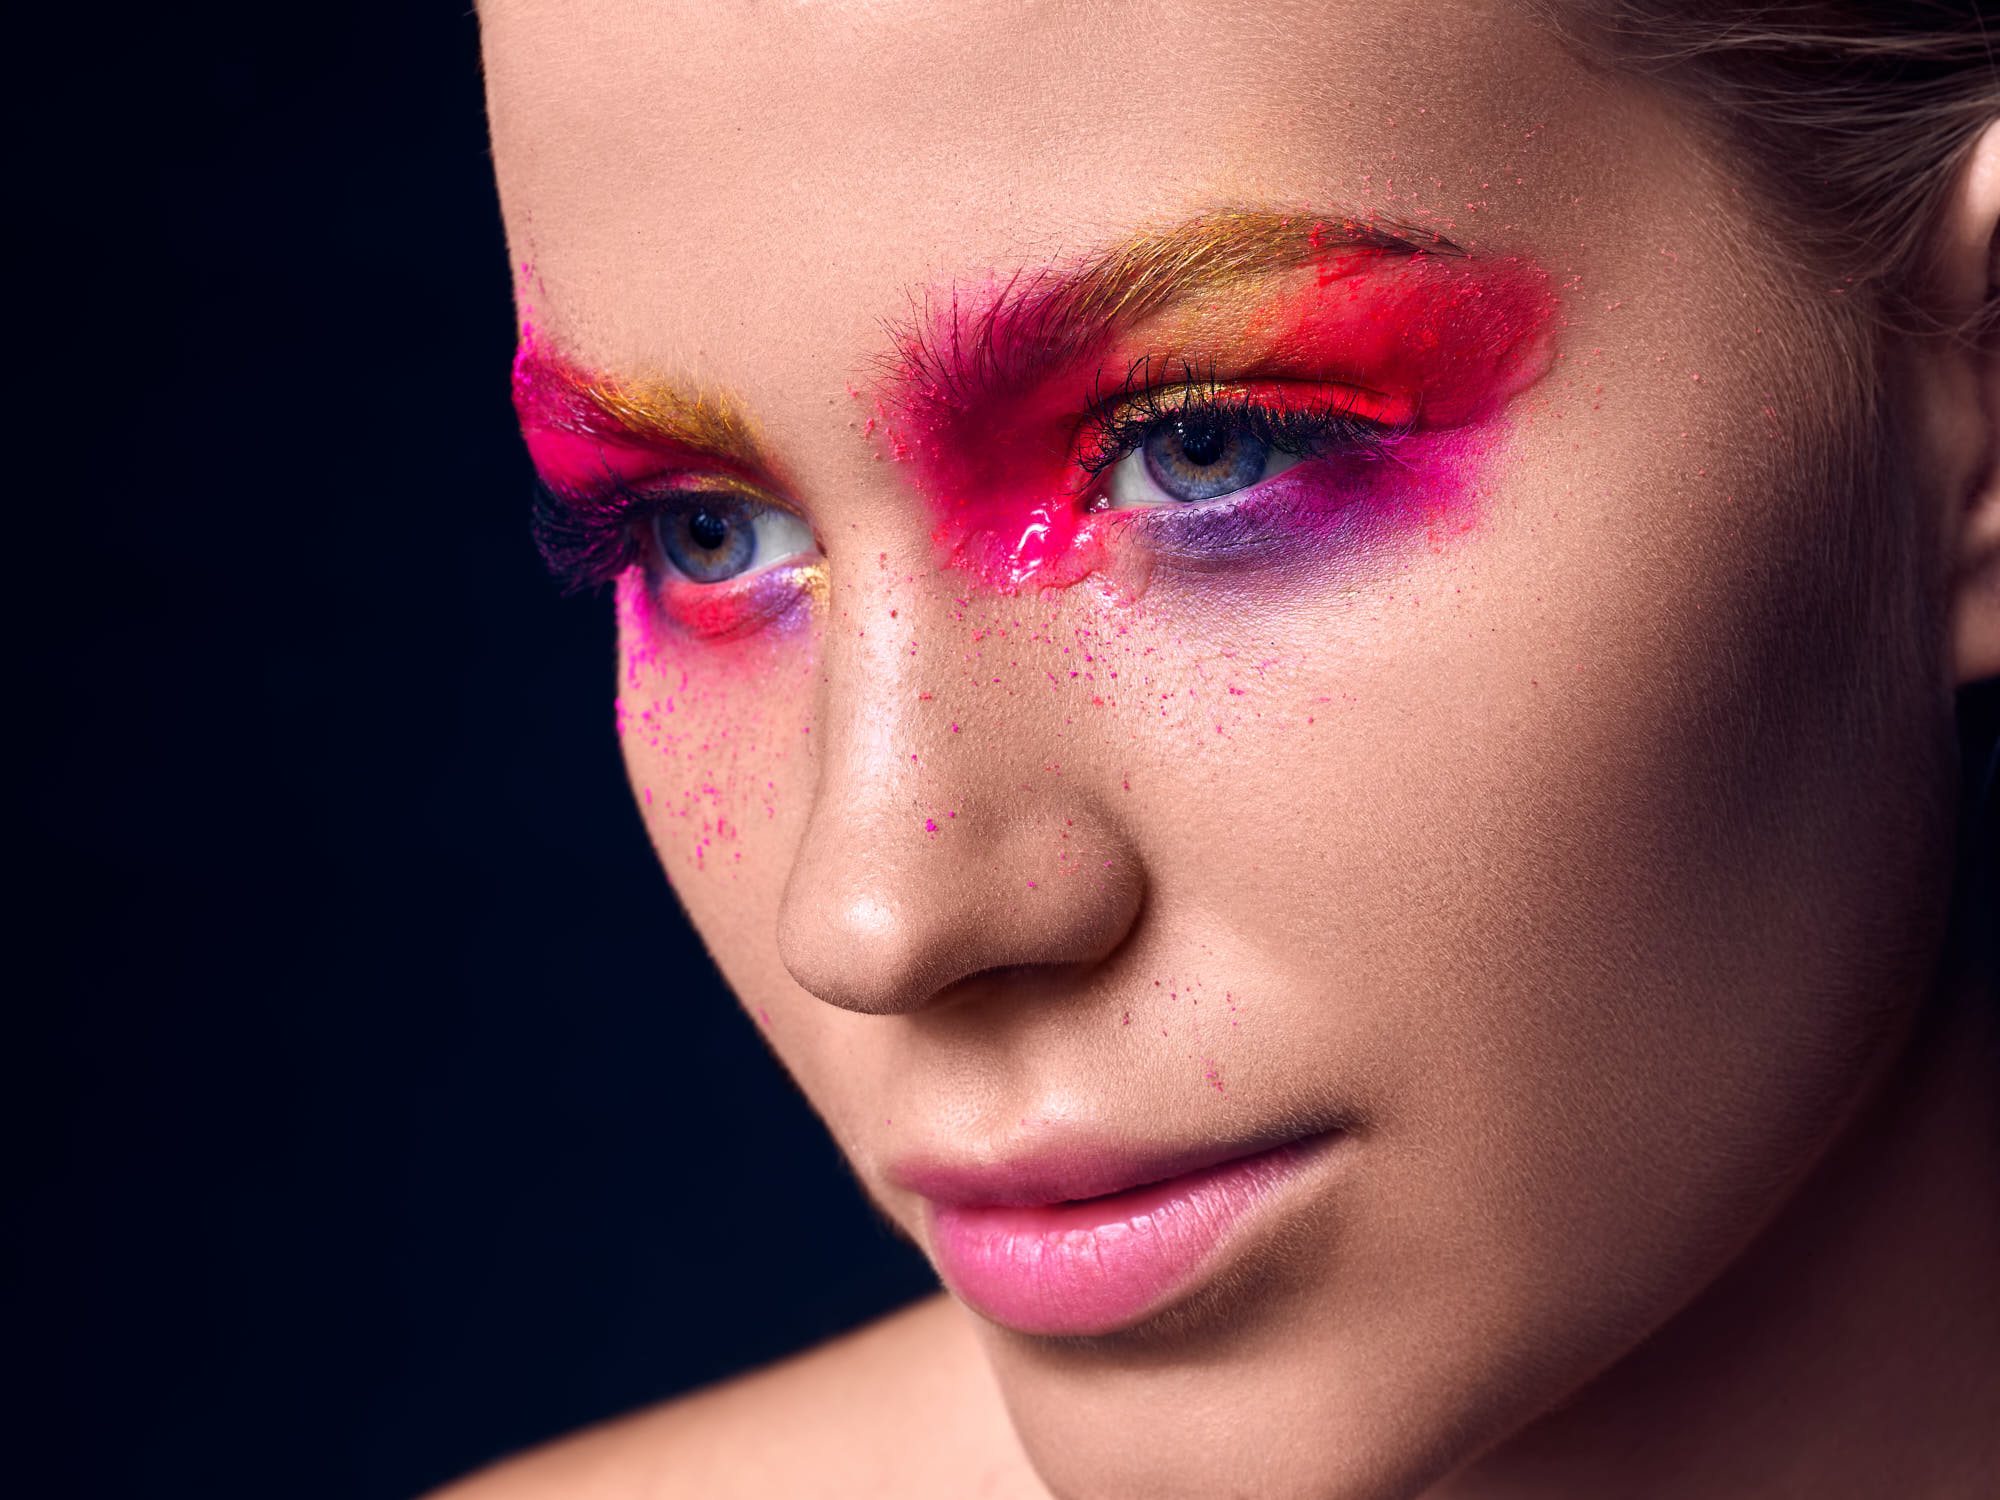 Natasja Voldstedlund Tanja Balsgaard make-up beauty portrait close-up model